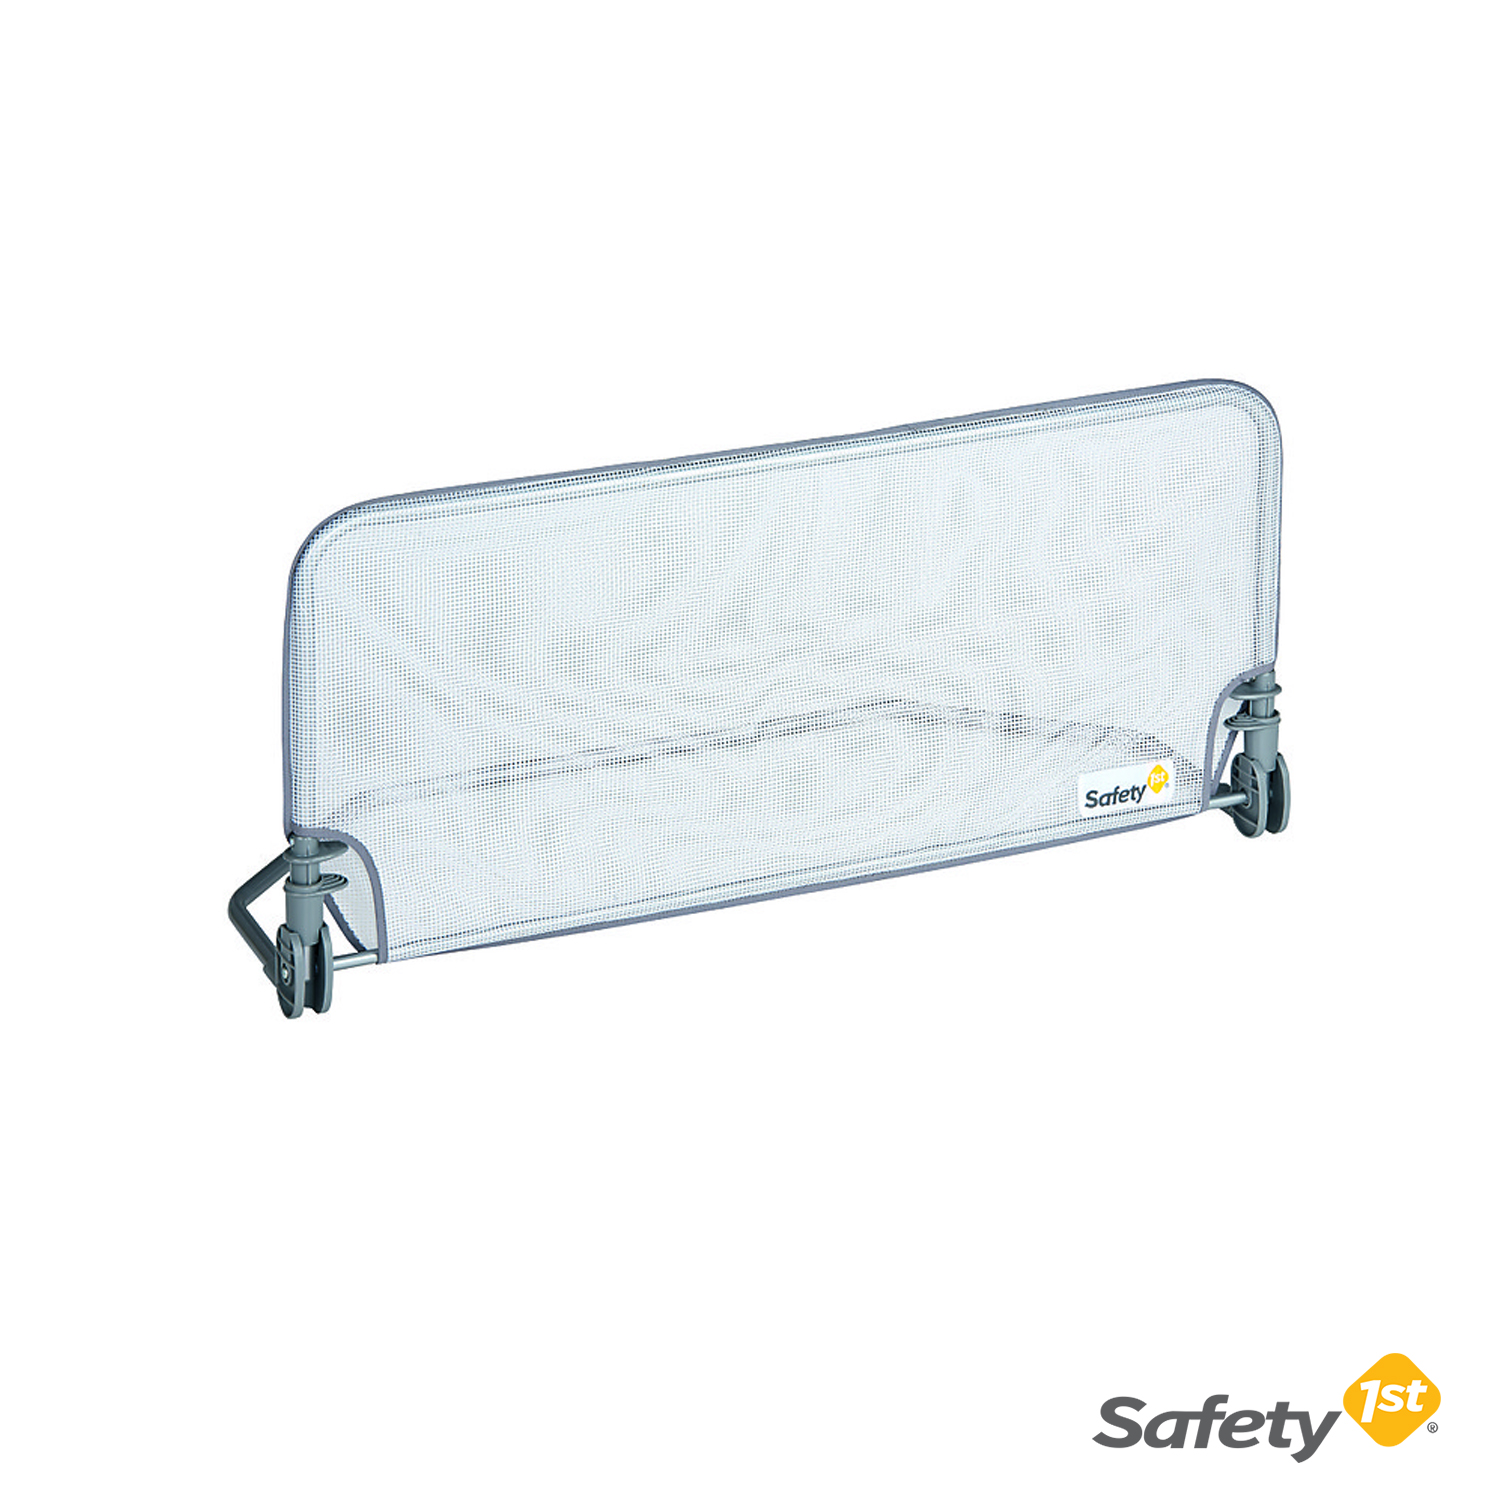 Barriera letto - Safety1st - Sponda di sicurezza 90 cm